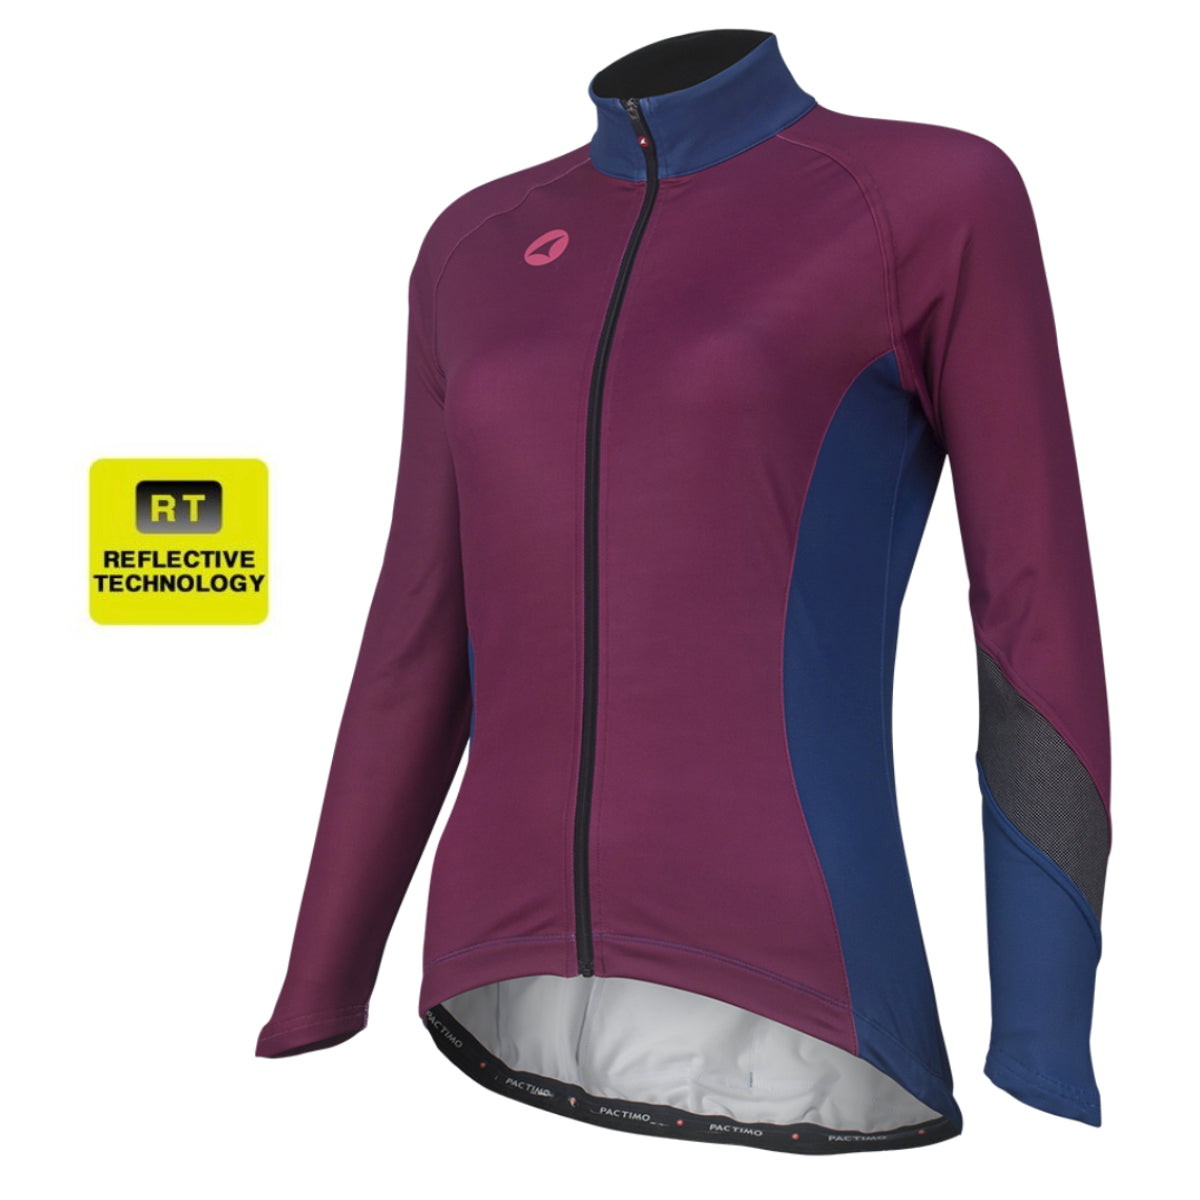 e63818b7c Alpine Thermal Reflective Cycling Jersey for Women - Pactimo